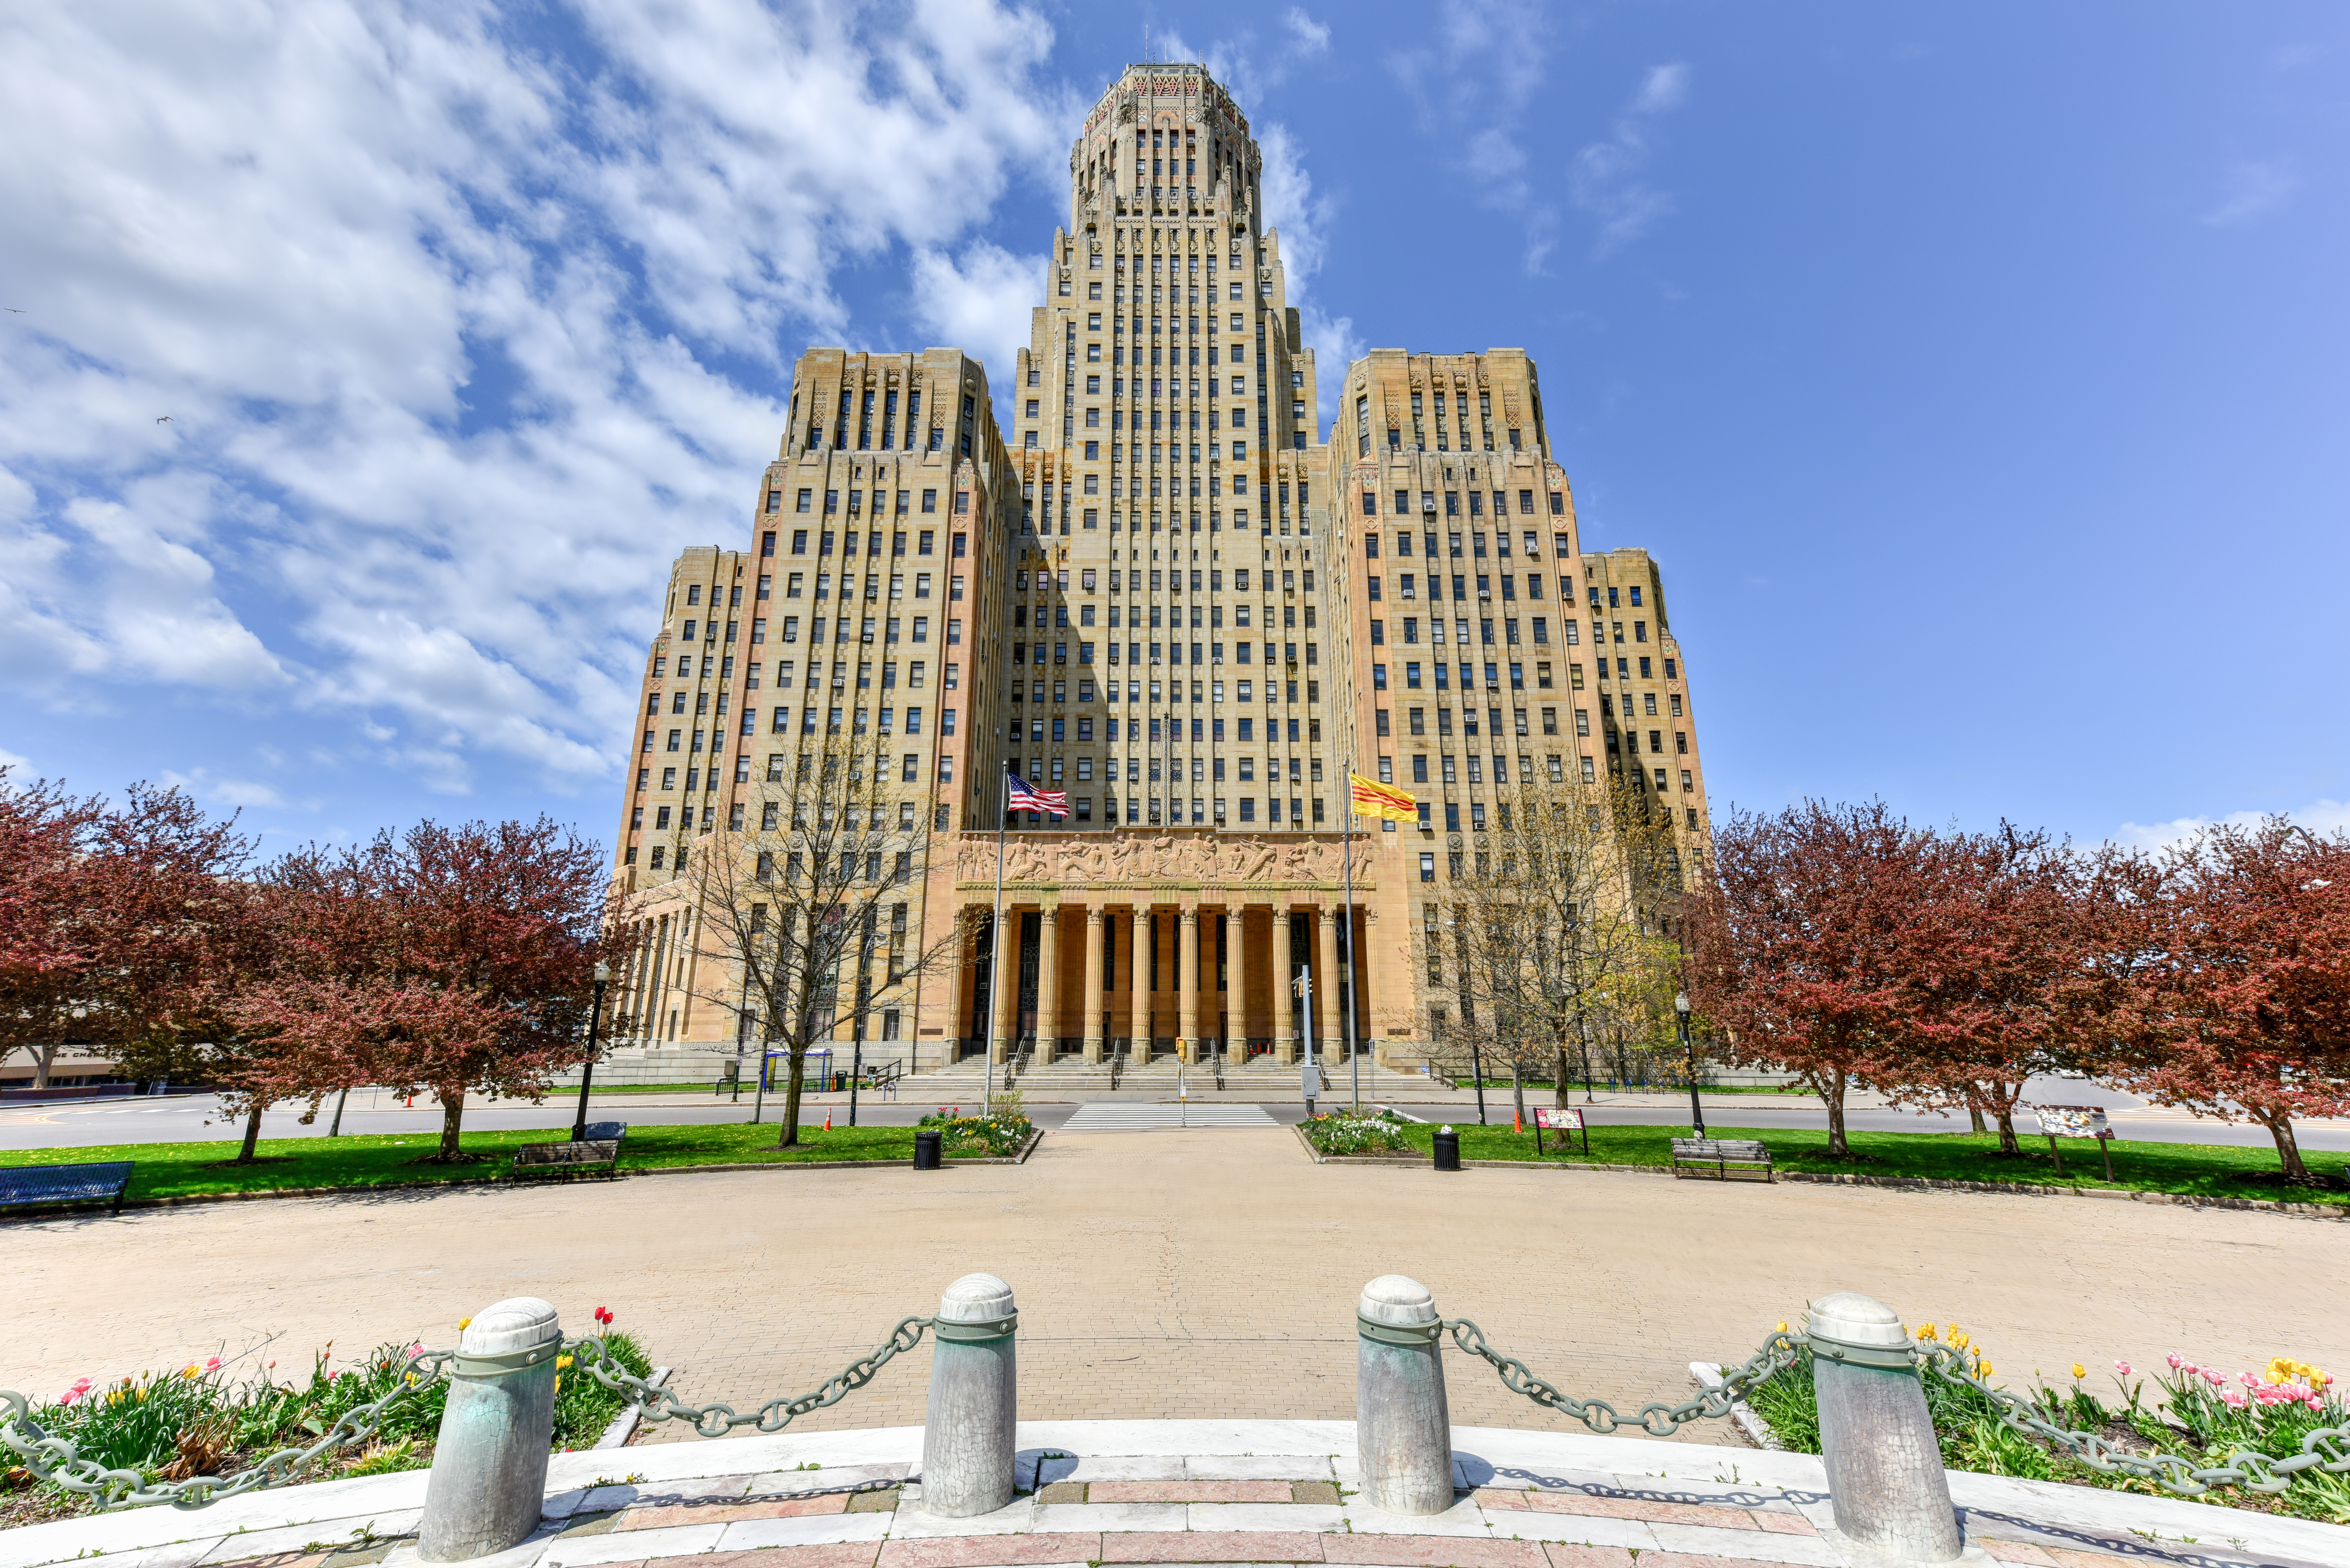 The Buffalo City Hall, built in the Art Deco style in 1931. Shutterstock